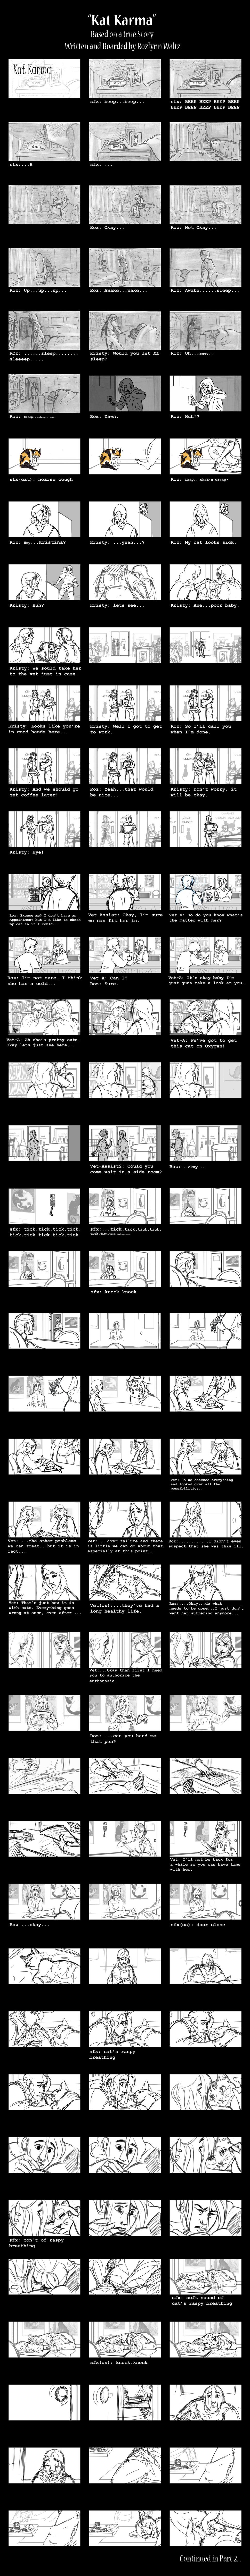 kat_karma___storyboards___part_by_rozlynnwaltz-d5c5hth